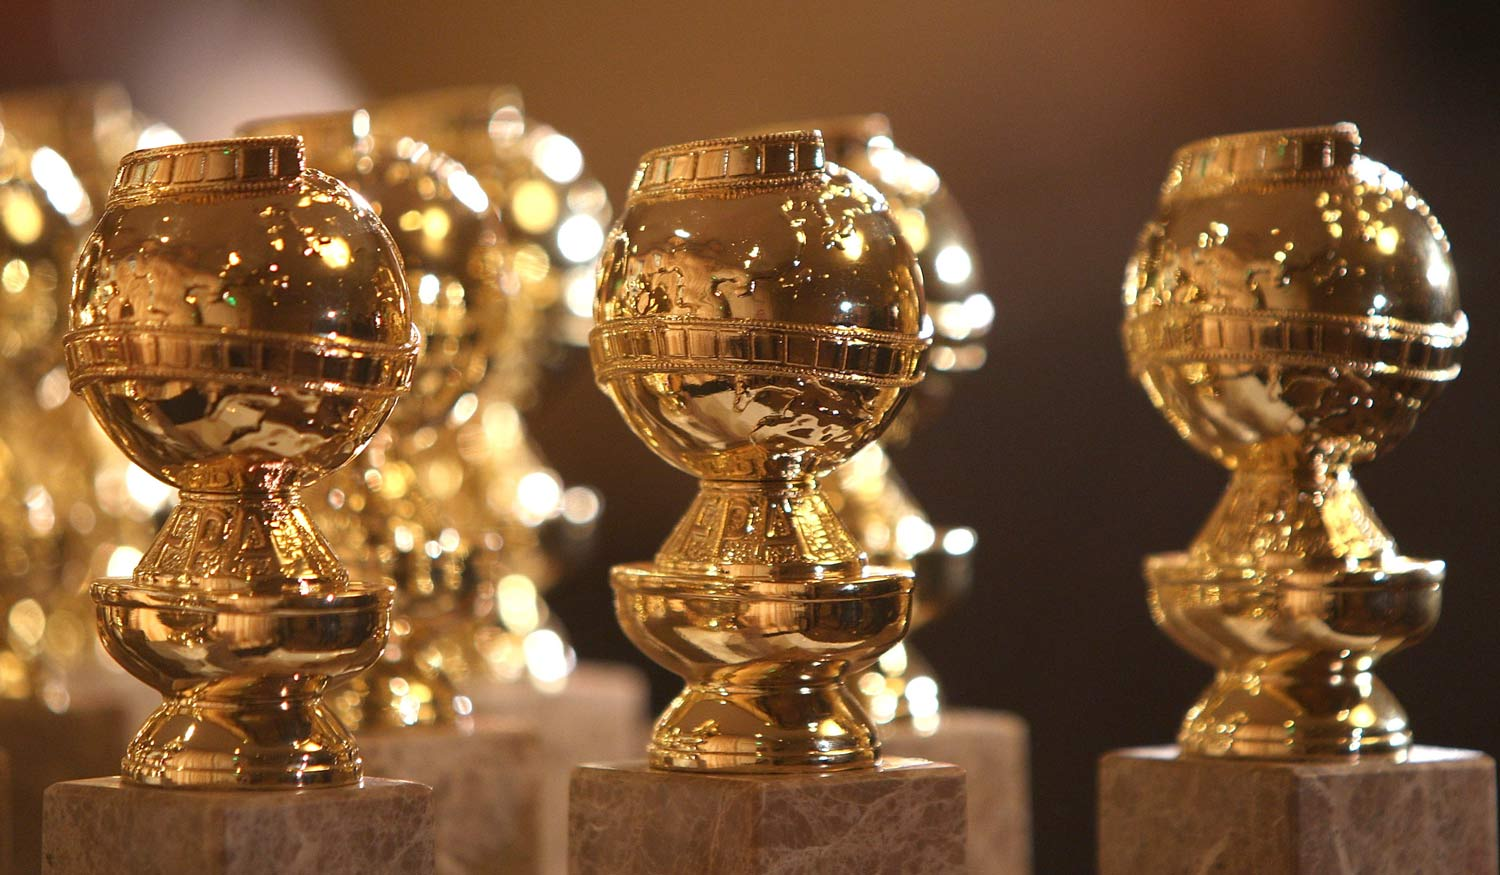 Golden Globes 2021 Nominees: Here's Where You Can Watch ...